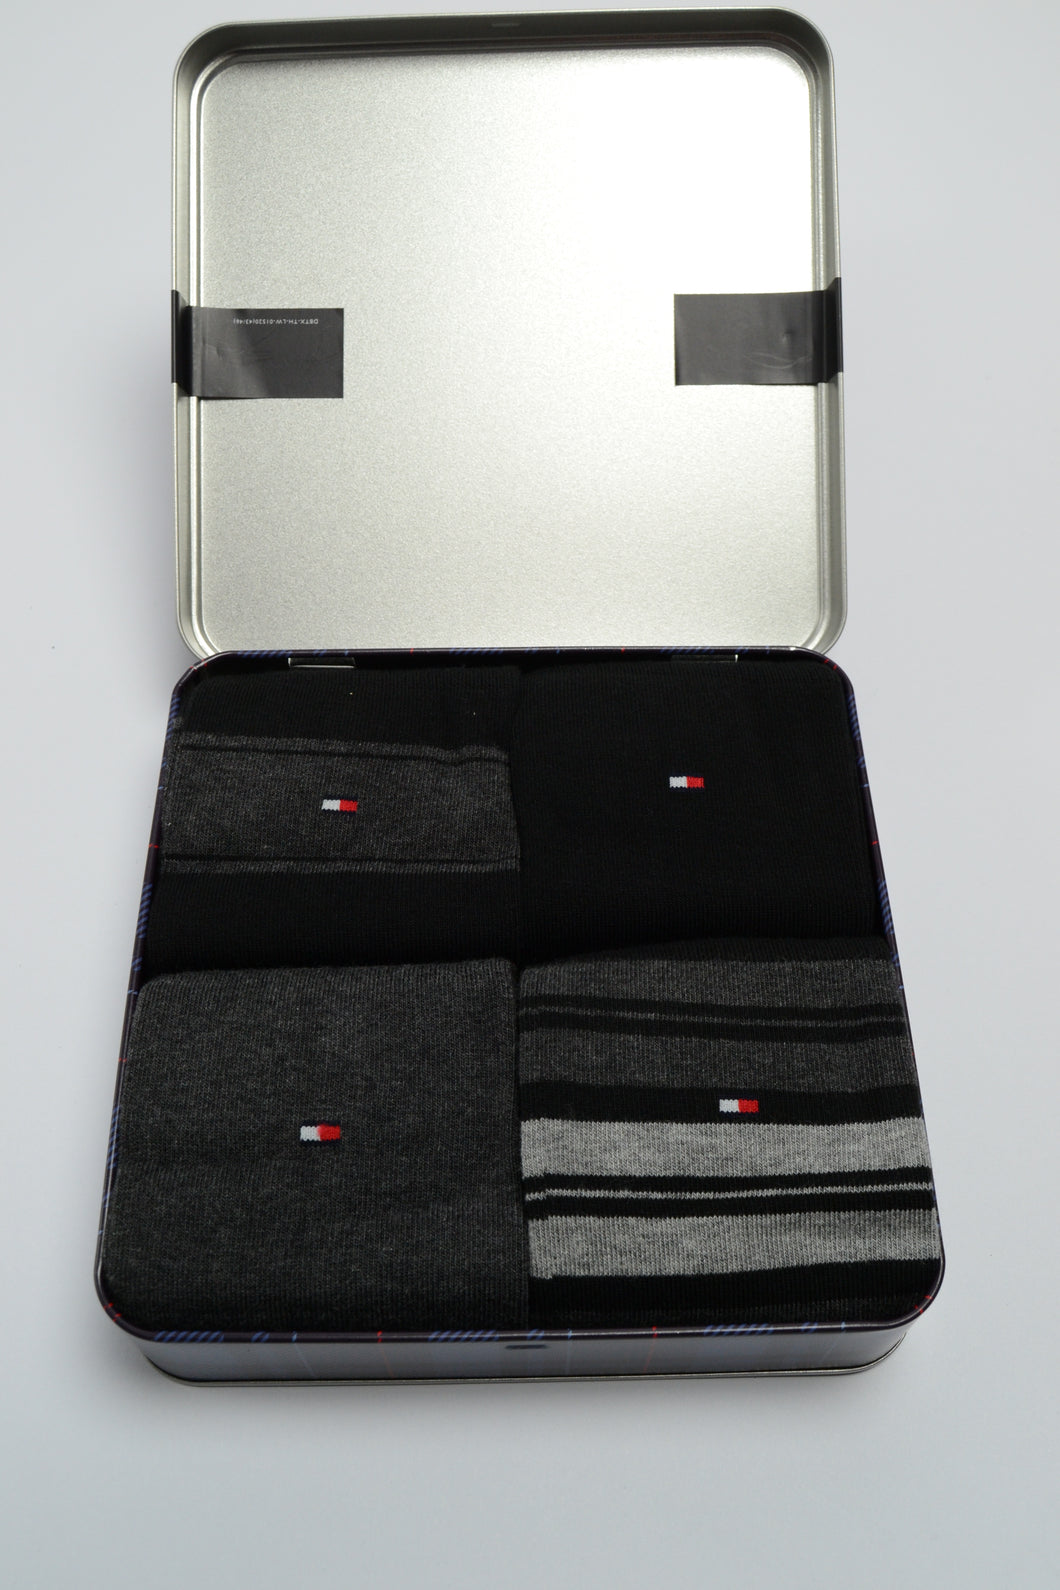 Tommy Hilfiger Socks, 4 Pair Gift Set, Grey/Black